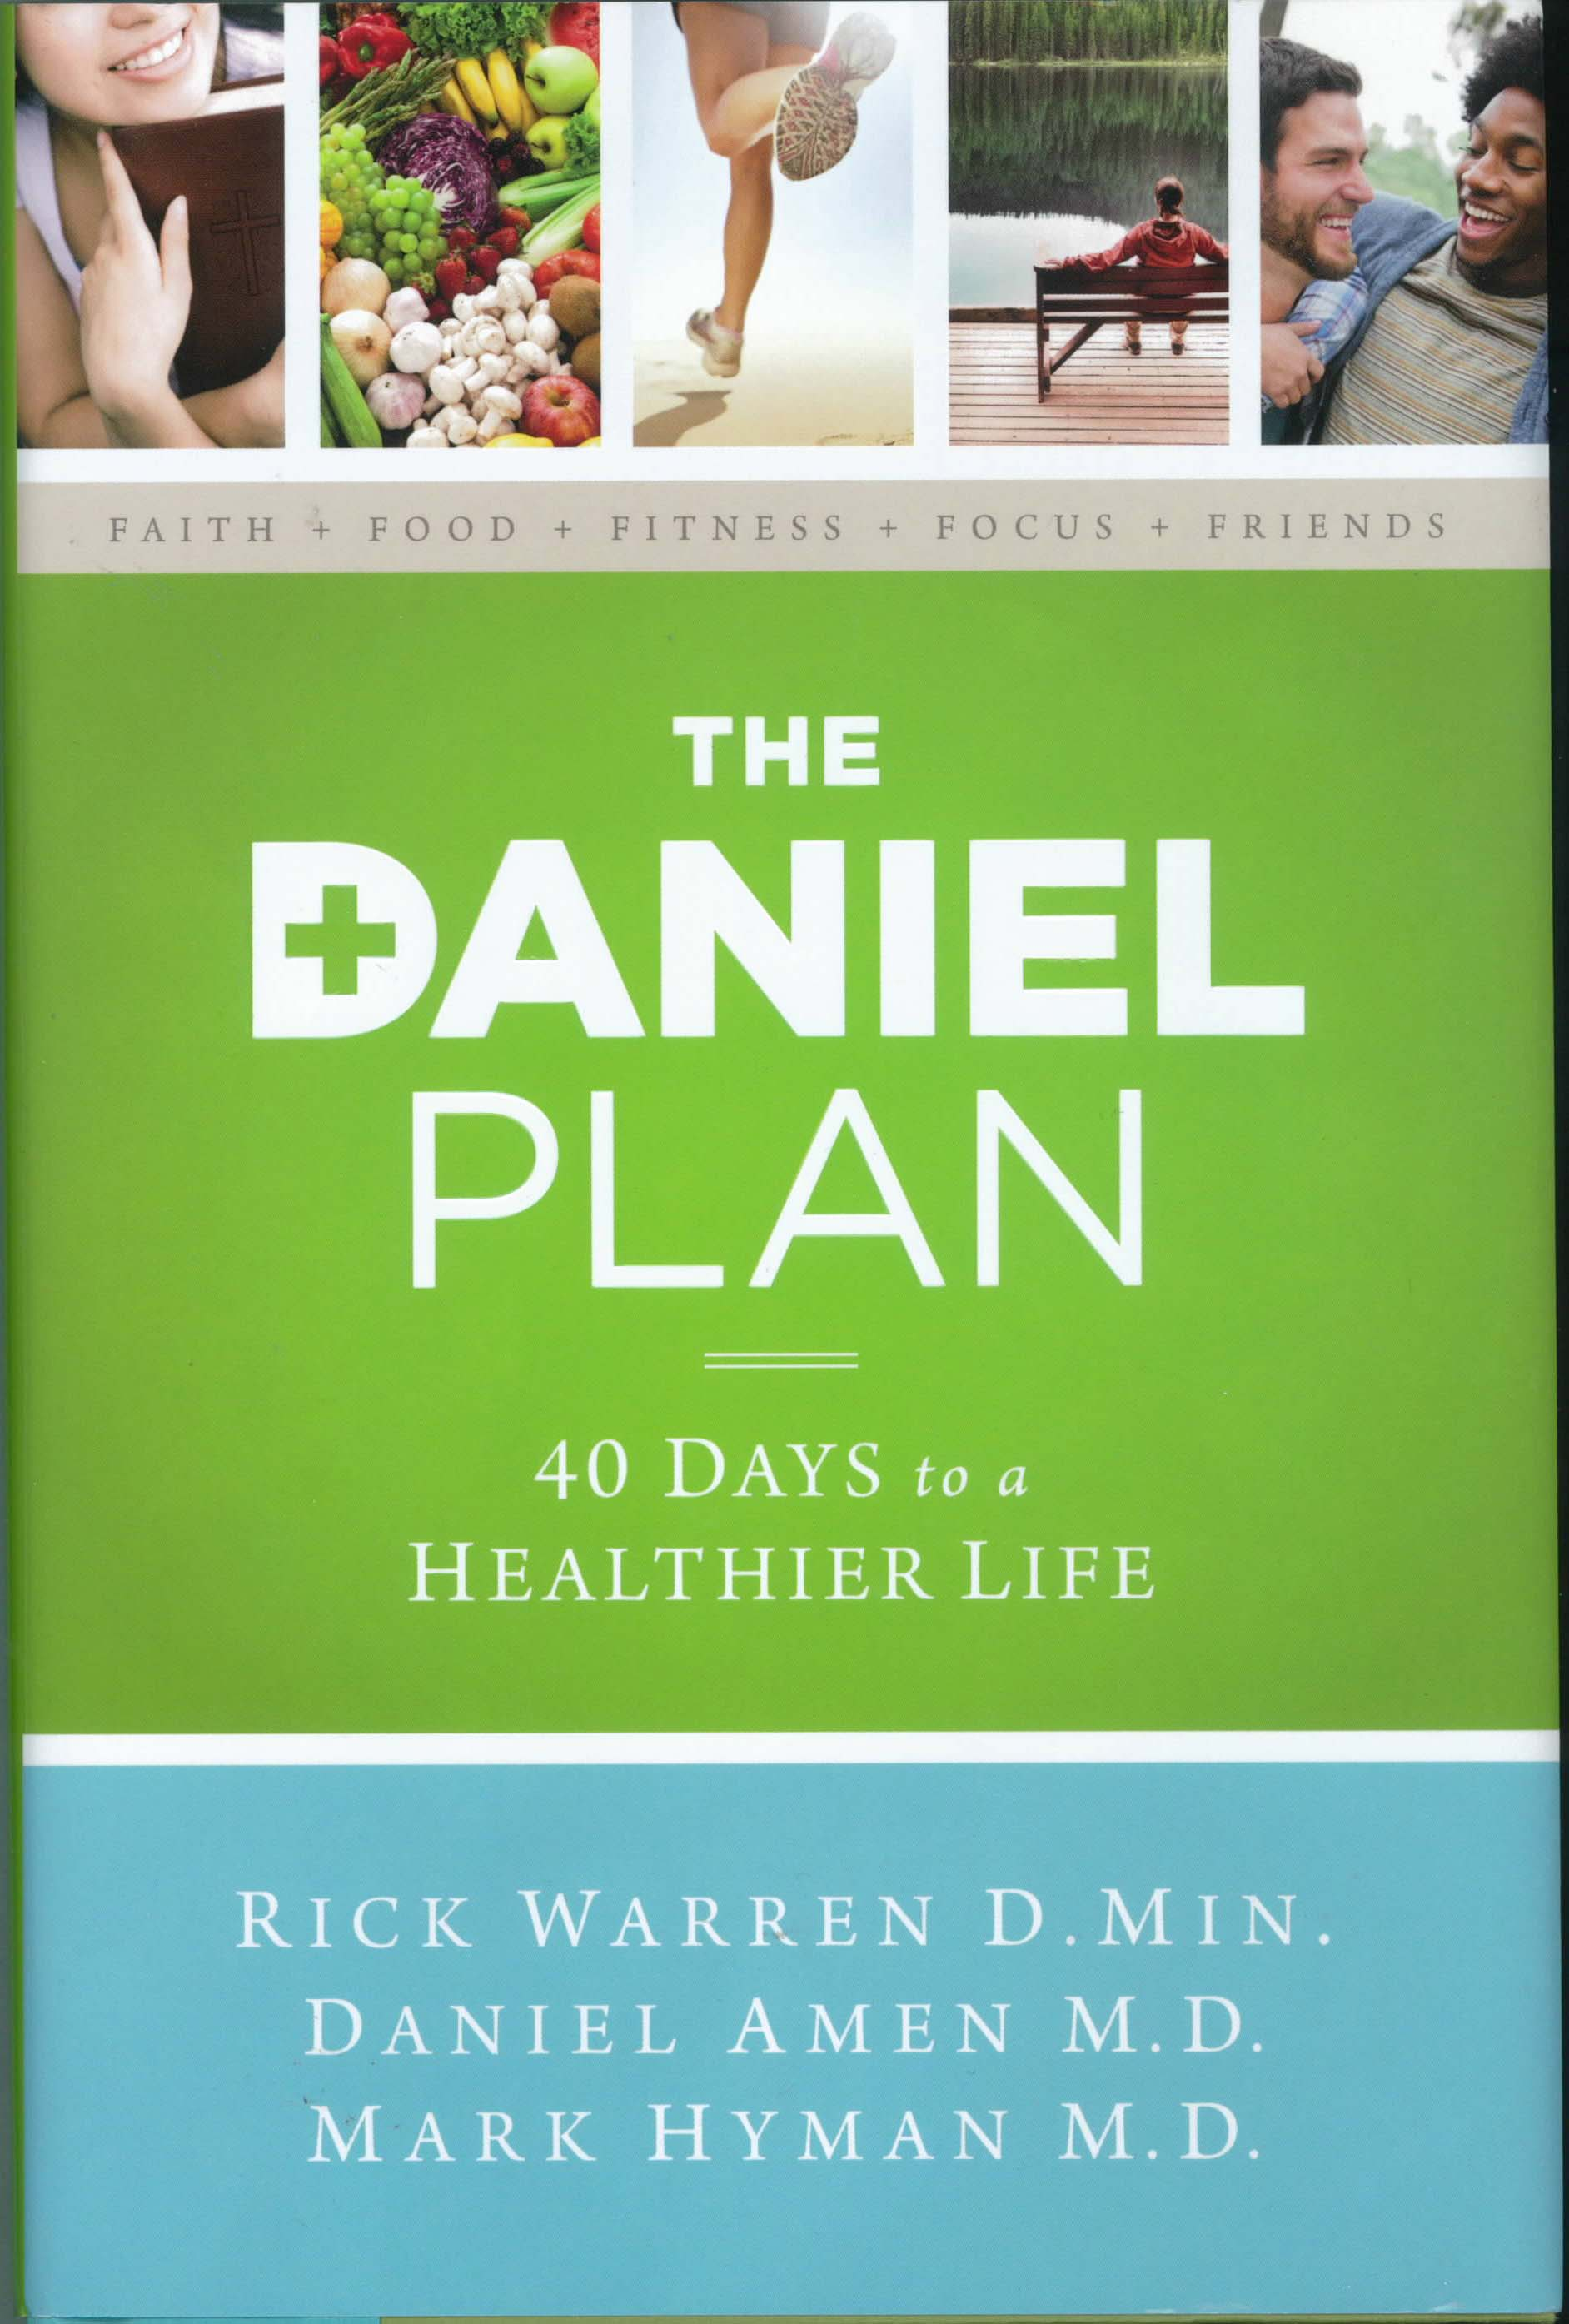 The Daniel Plan: 40 Days to a Healthier Life by Rick Warren 108-9780310344292